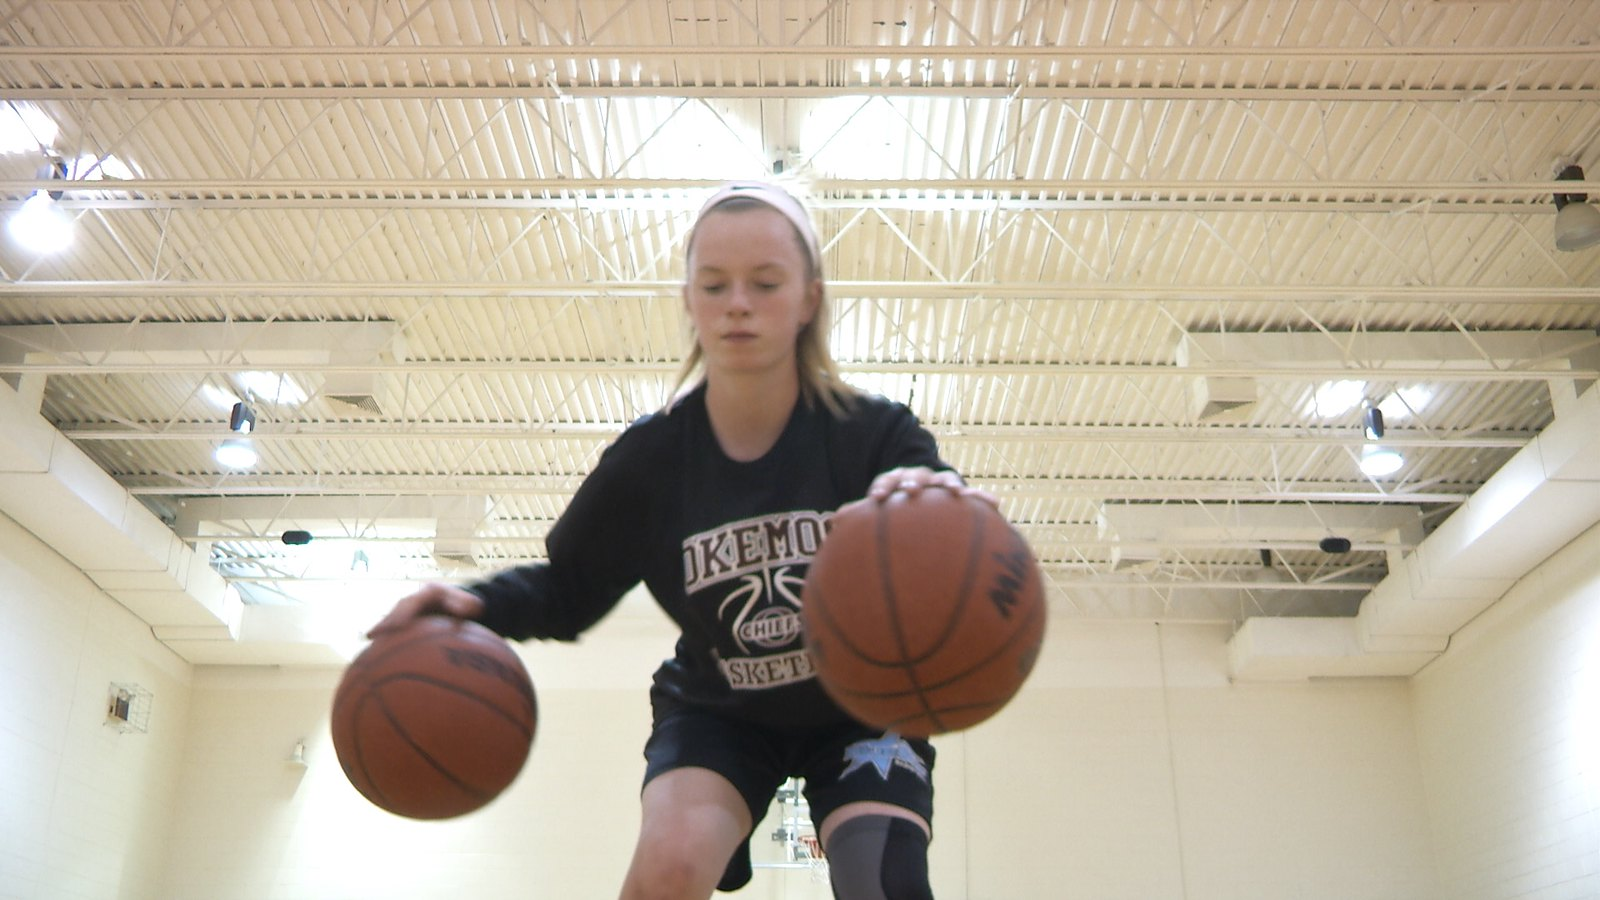 Okemos 8th grader competes in the 2018 Elite Girls Basketball All-American Game